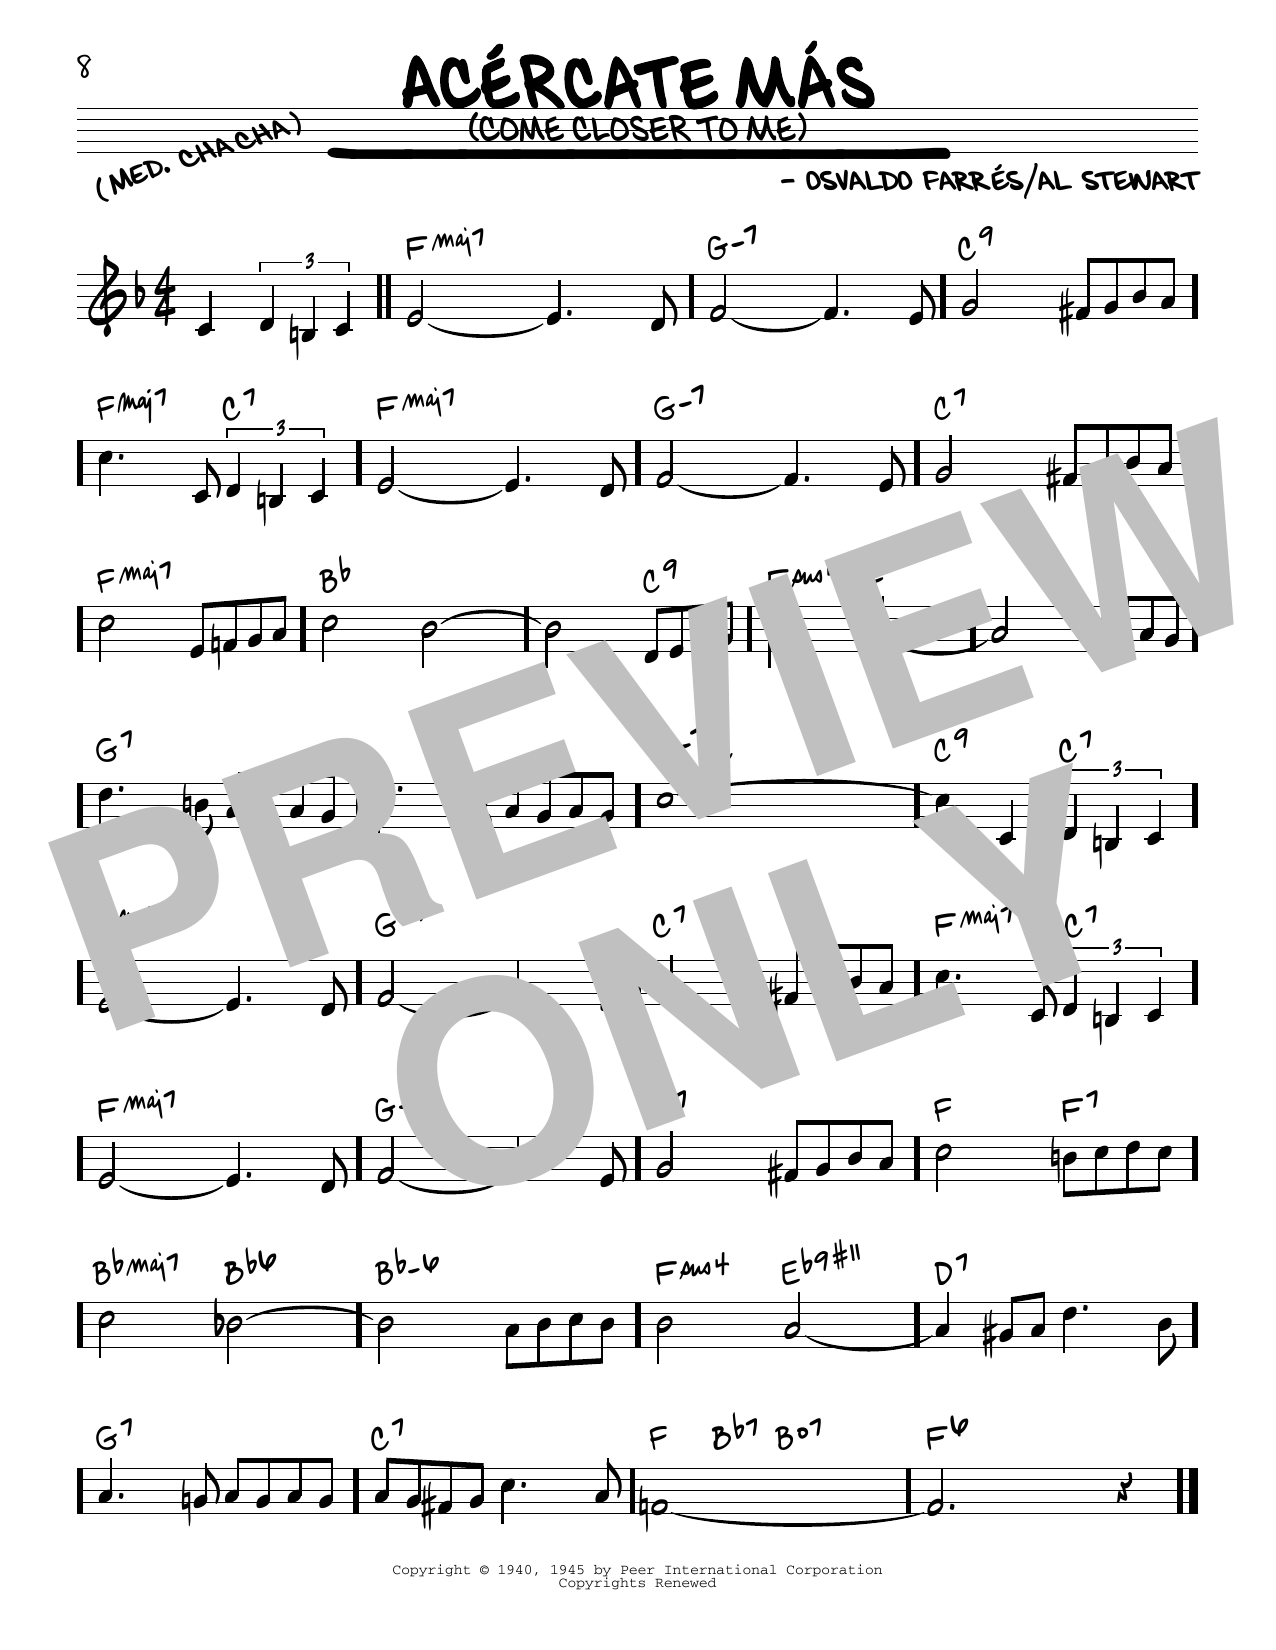 Acercate Más (Come Closer To Me) Sheet Music